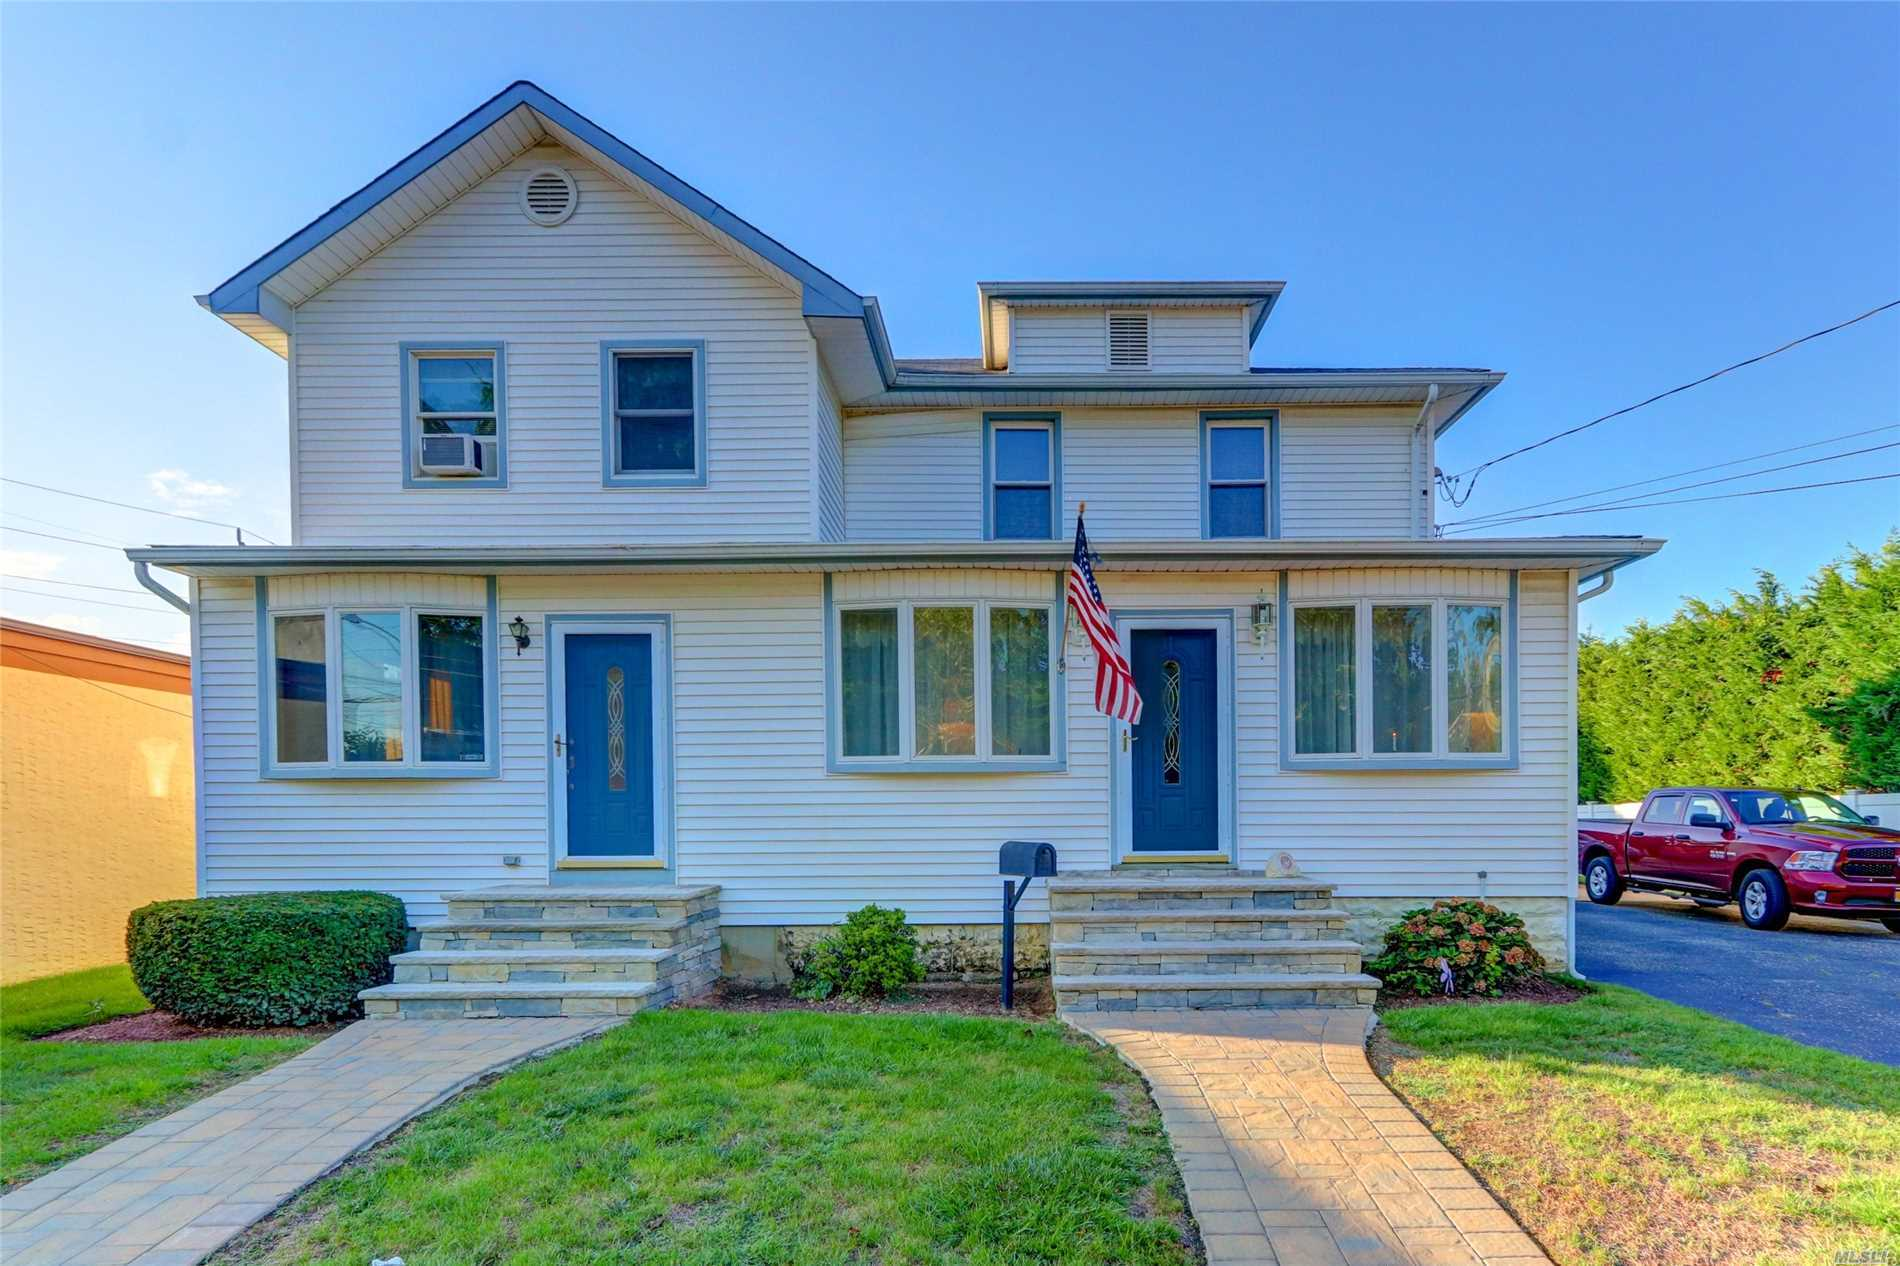 This Beautifully Maintained Large Colonial Is Situated On A 75 X 100 Lot And Close To The Lirr. Inside You Will Find A Large Living Room, Formal Dining Room, And Large Kitchen W/ Room For A Table, Den, Bedroom, And Full Bath. Upstairs Includes 4 Generously Sized Bedrooms, Master Bedroom With Walk In Closet,  Full Bath, And Office. Outside Features Attractive Landscaping, 6 Car Driveway, 2 Car Garage, And Large Deck.